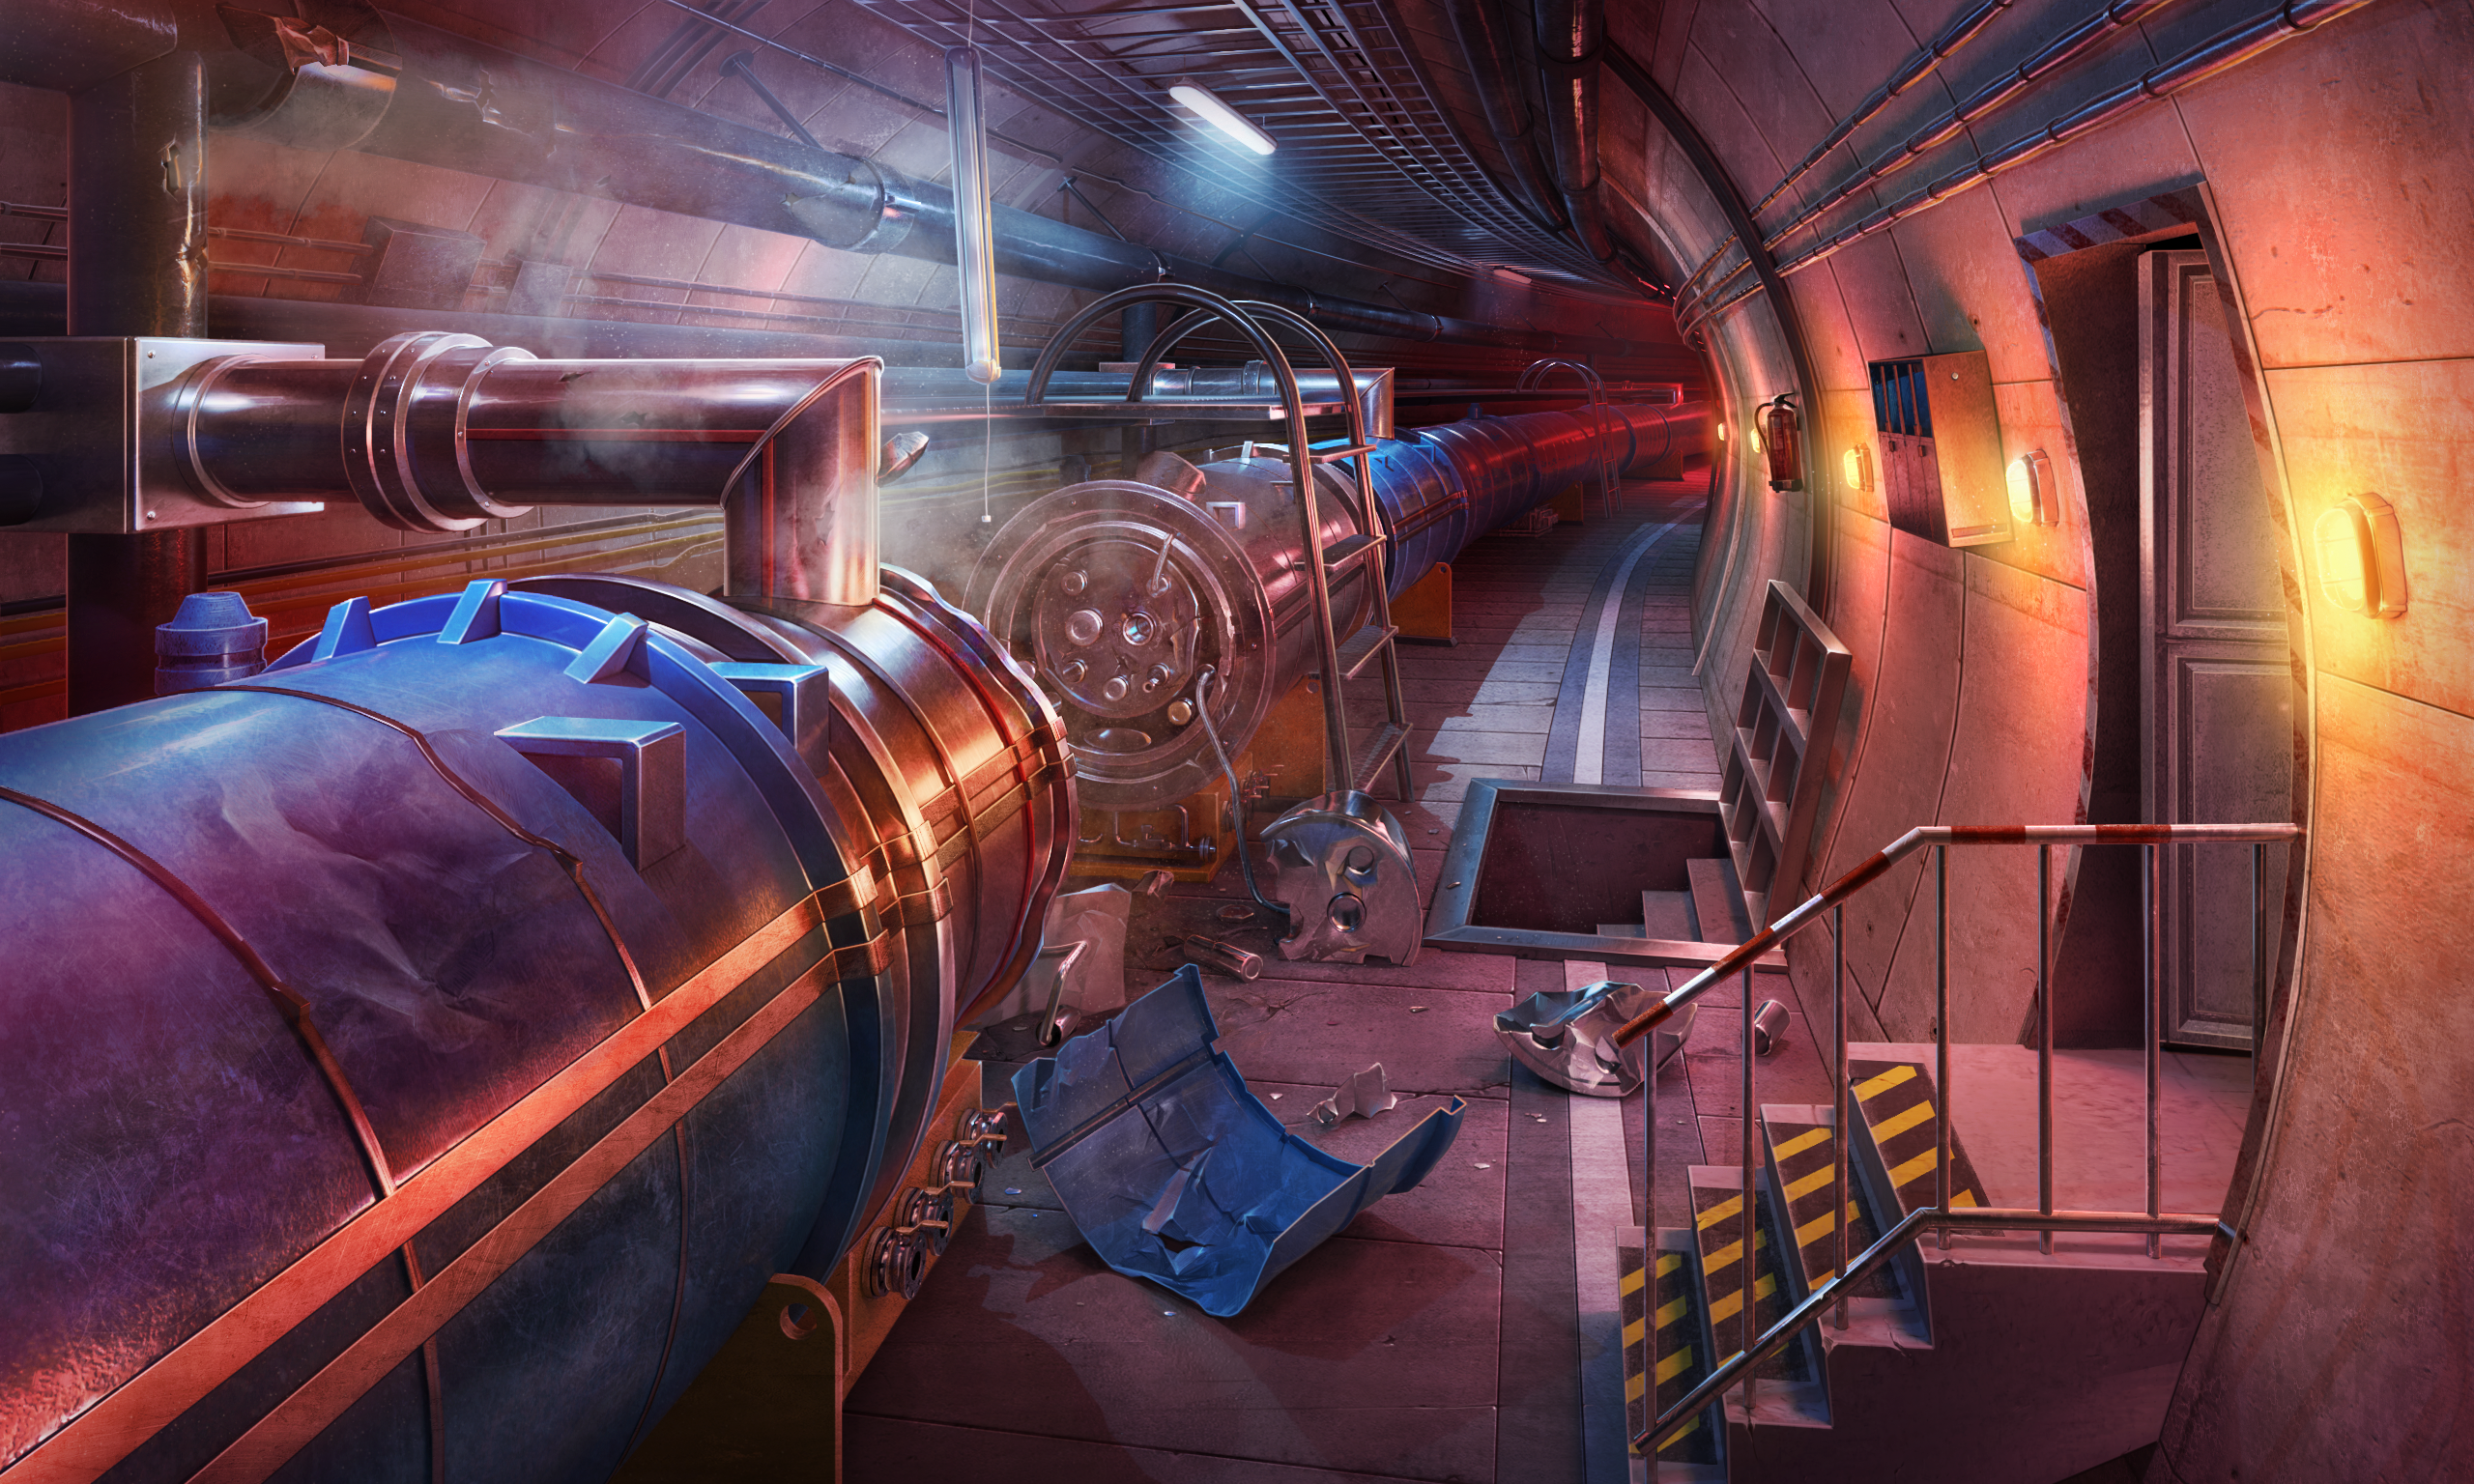 Hadron Collider xfiles background deepstate hadroncollider 2560x1536